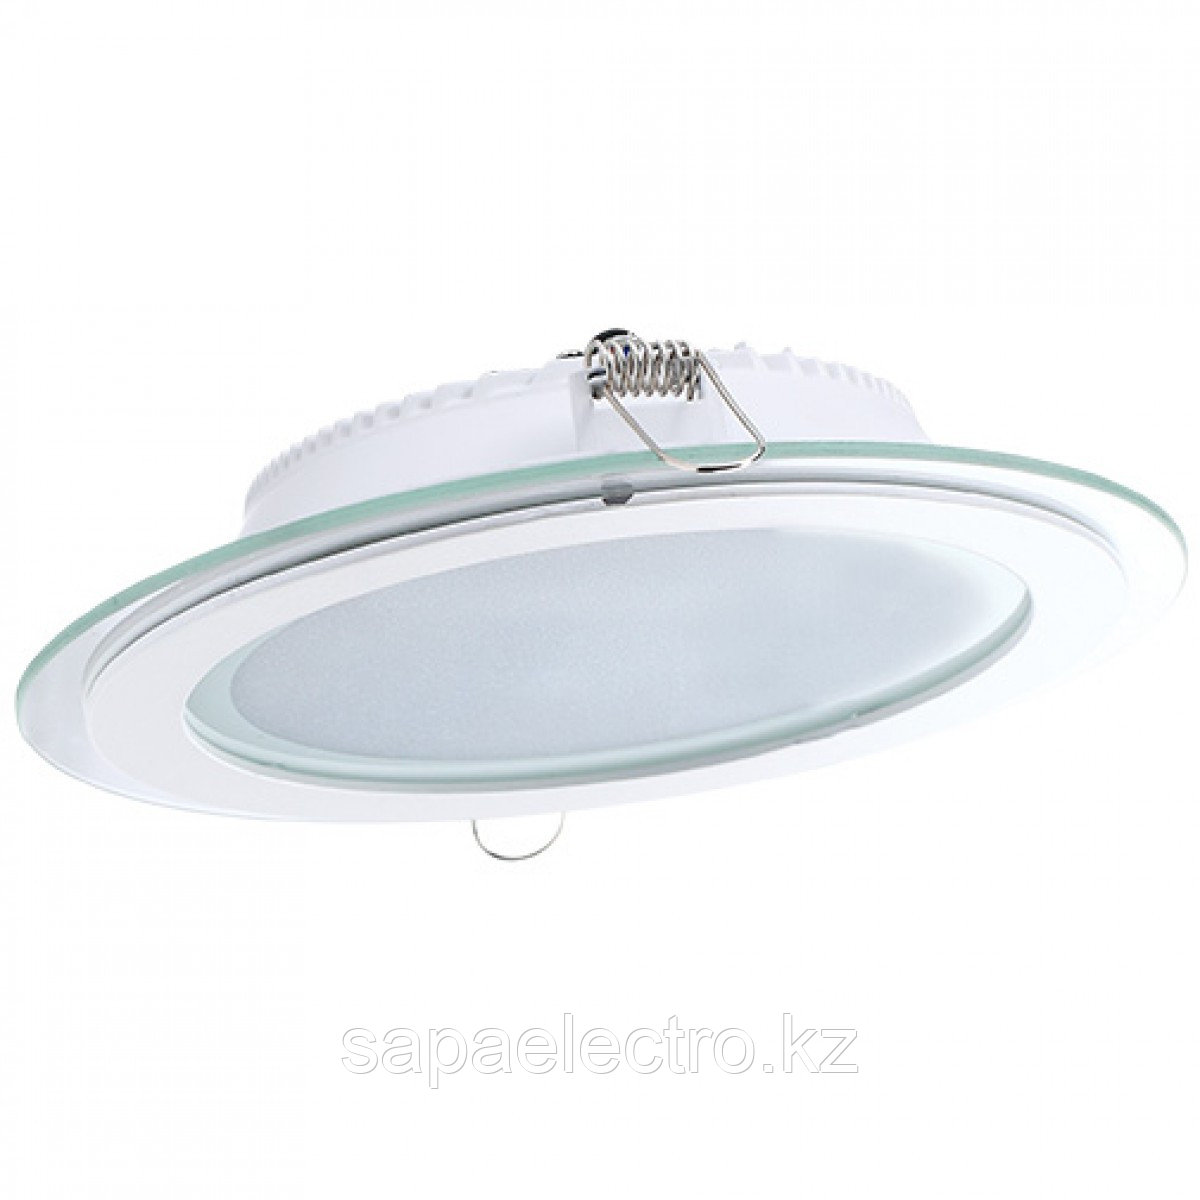 Свет-к DL LED GLASS ROUND PANEL12W 6000K (TS)20шт,4